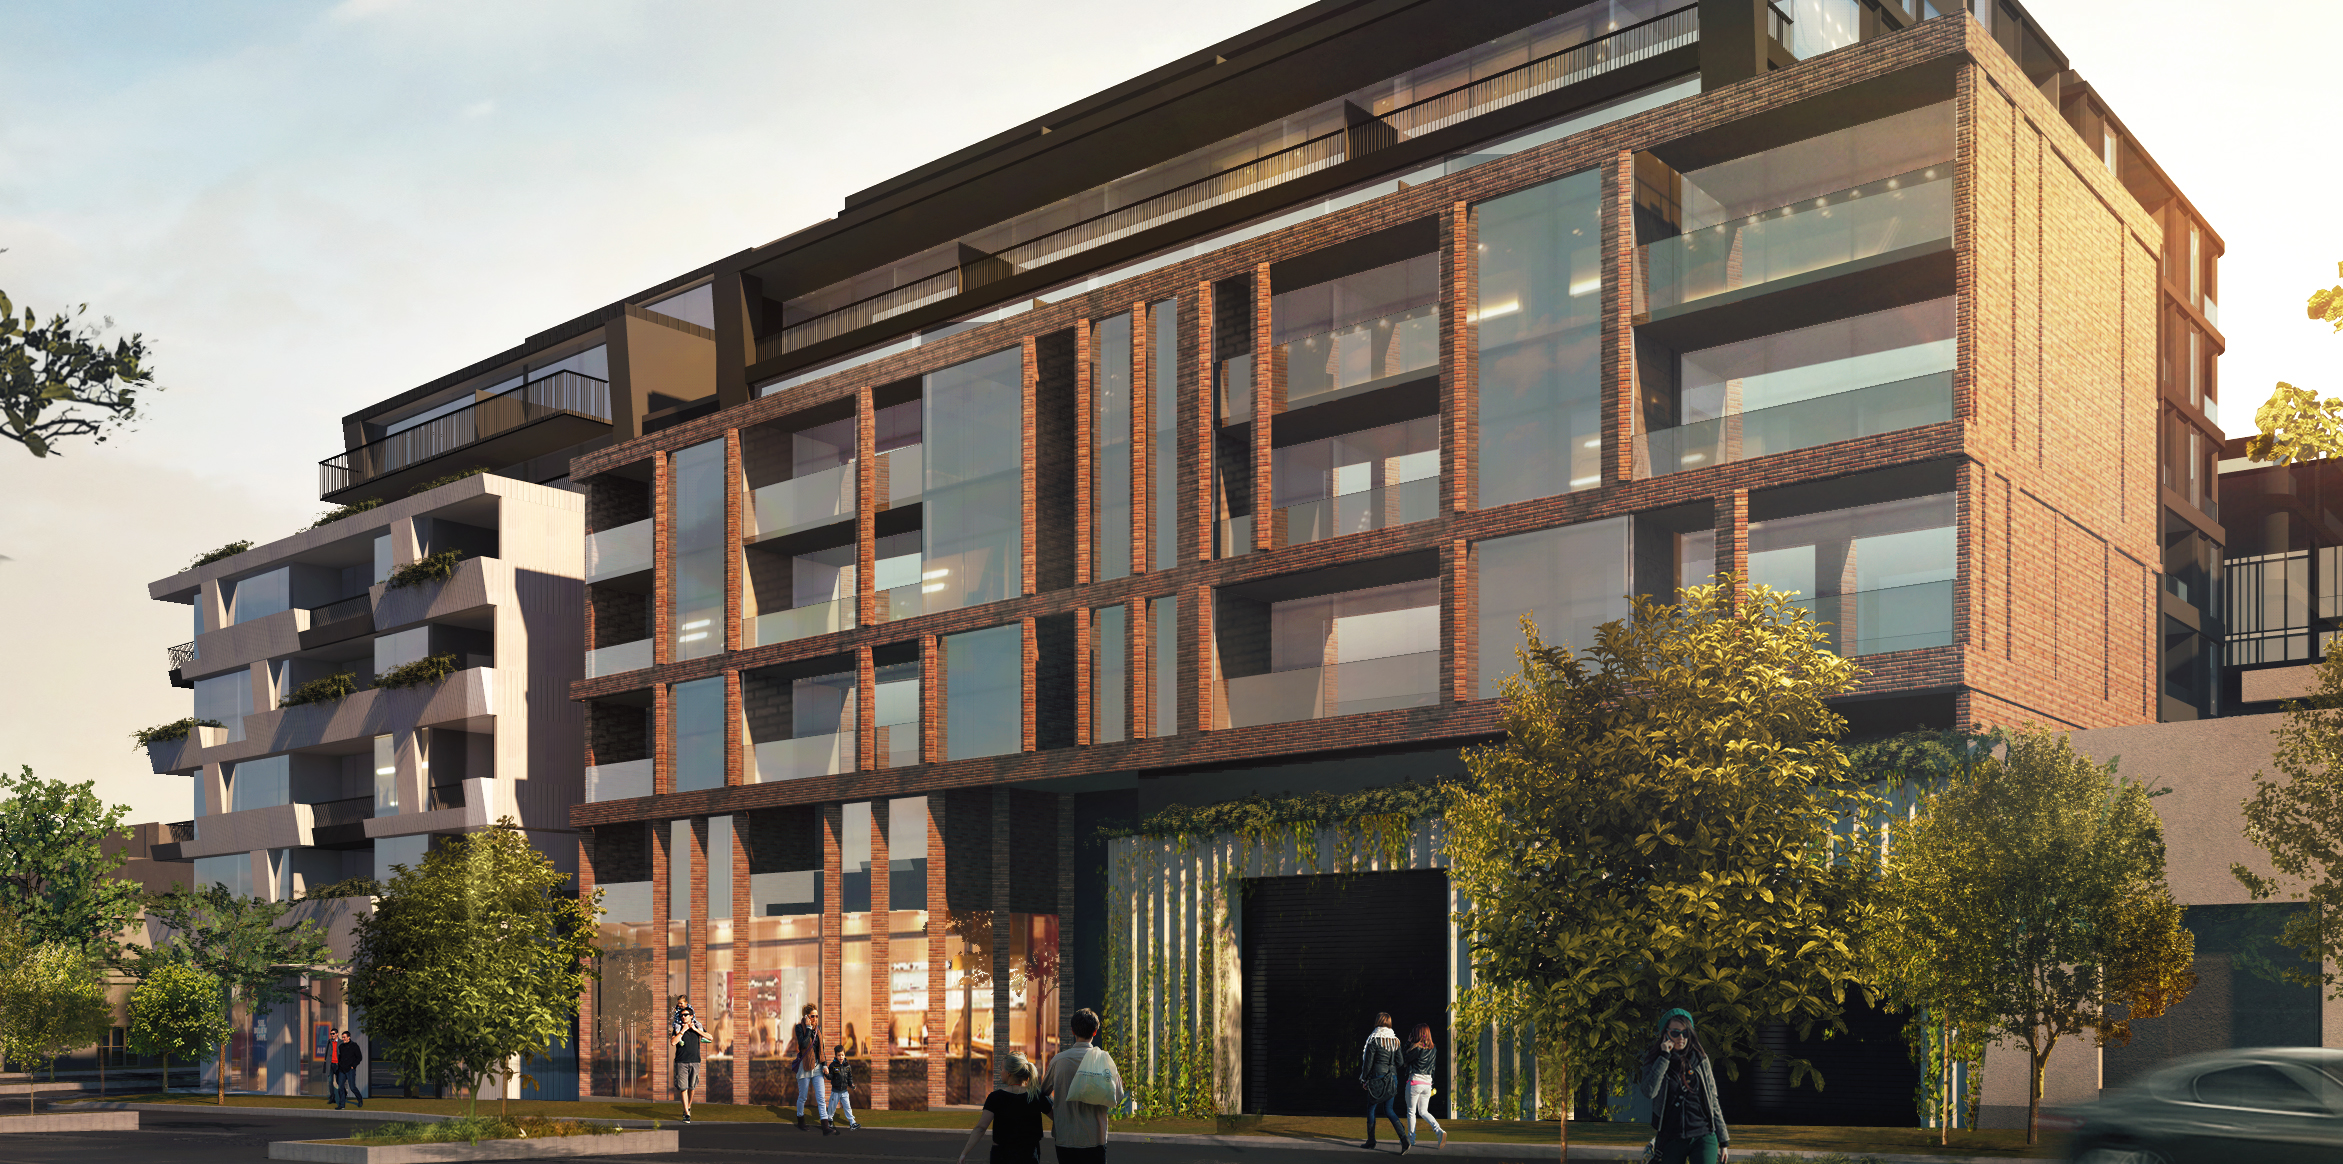 The eight-storey project comprises 193 apartments, an Aldi supermarket and a new laneway off Spencer Street.